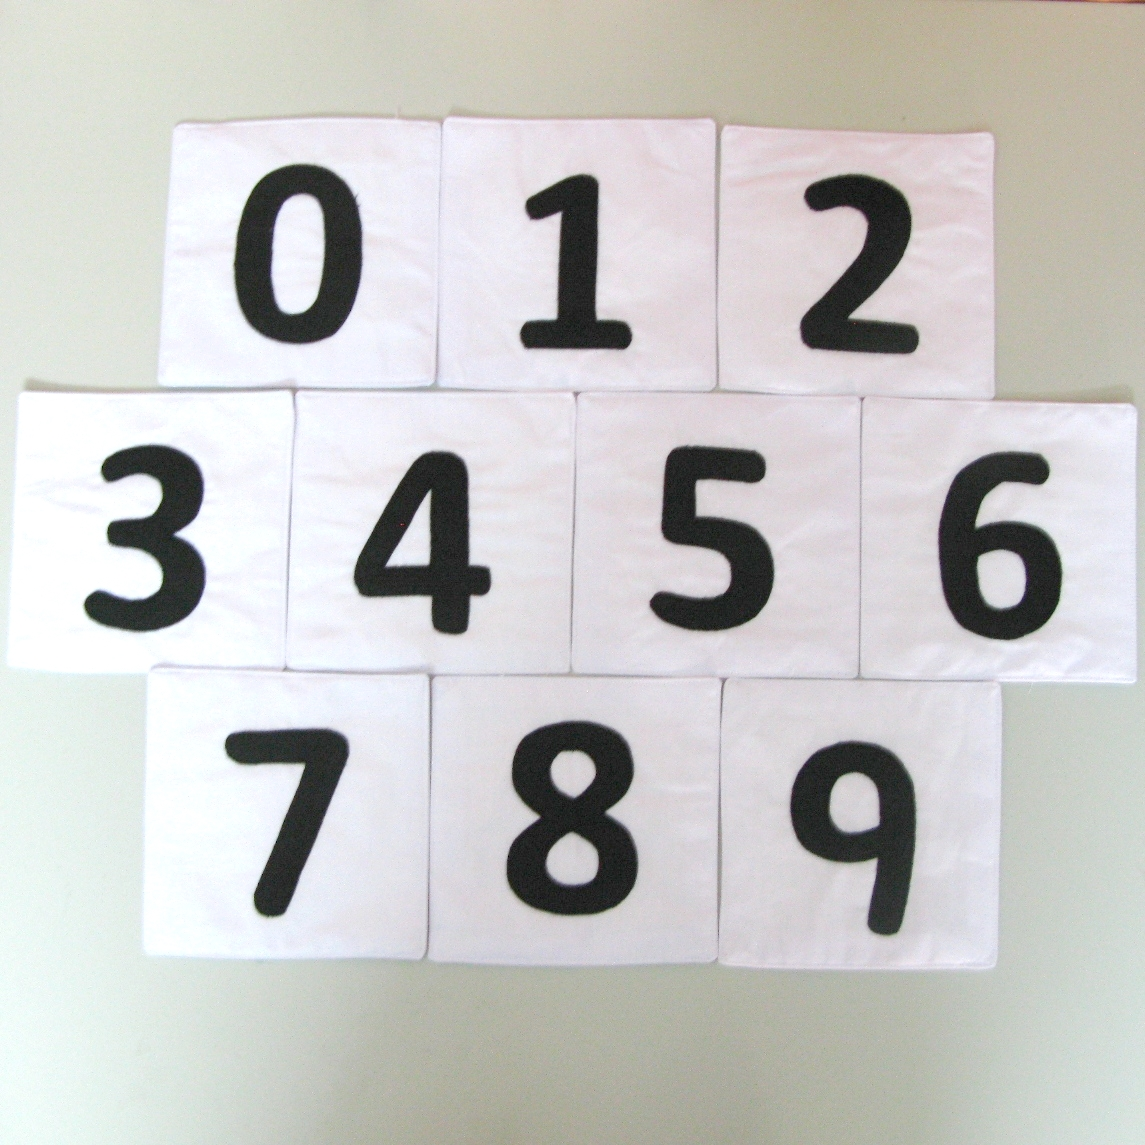 Flashcard numbers 01